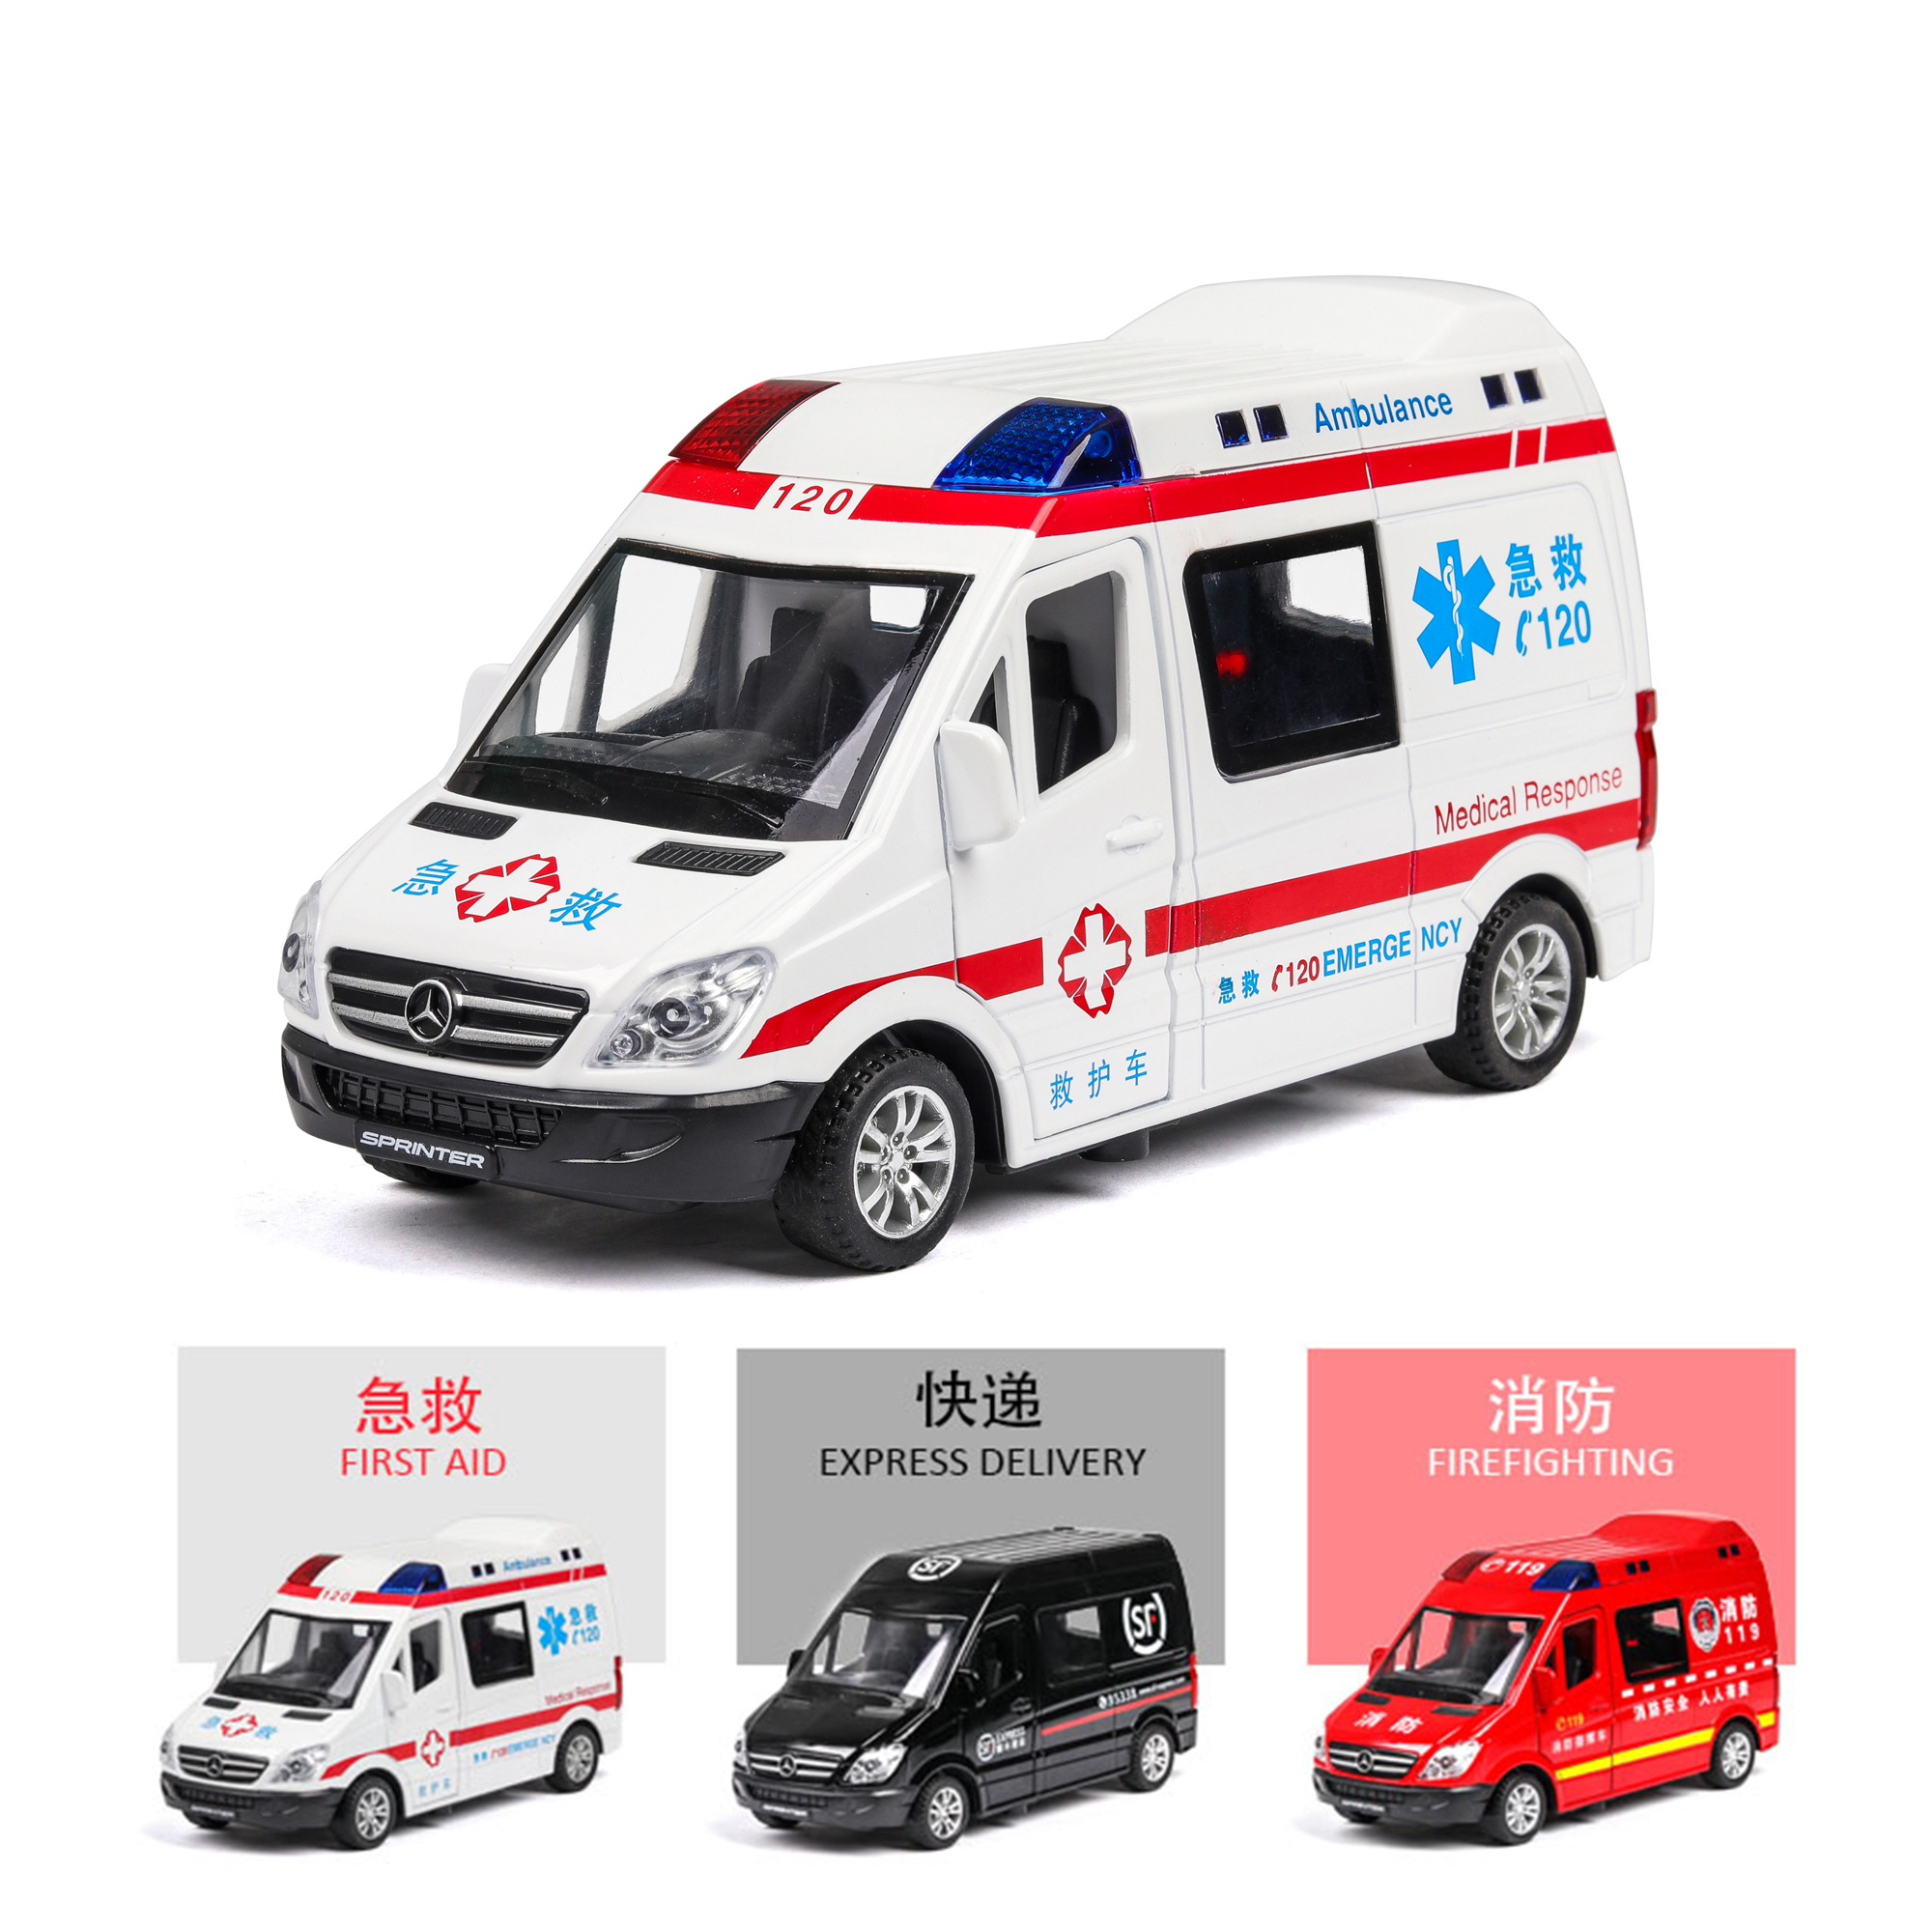 1:32 Fire Express Ambulance Car Toy Car  Metal Toy Diecasts & Toy Vehicles Car Model With Light & Sound Car Toys For Children